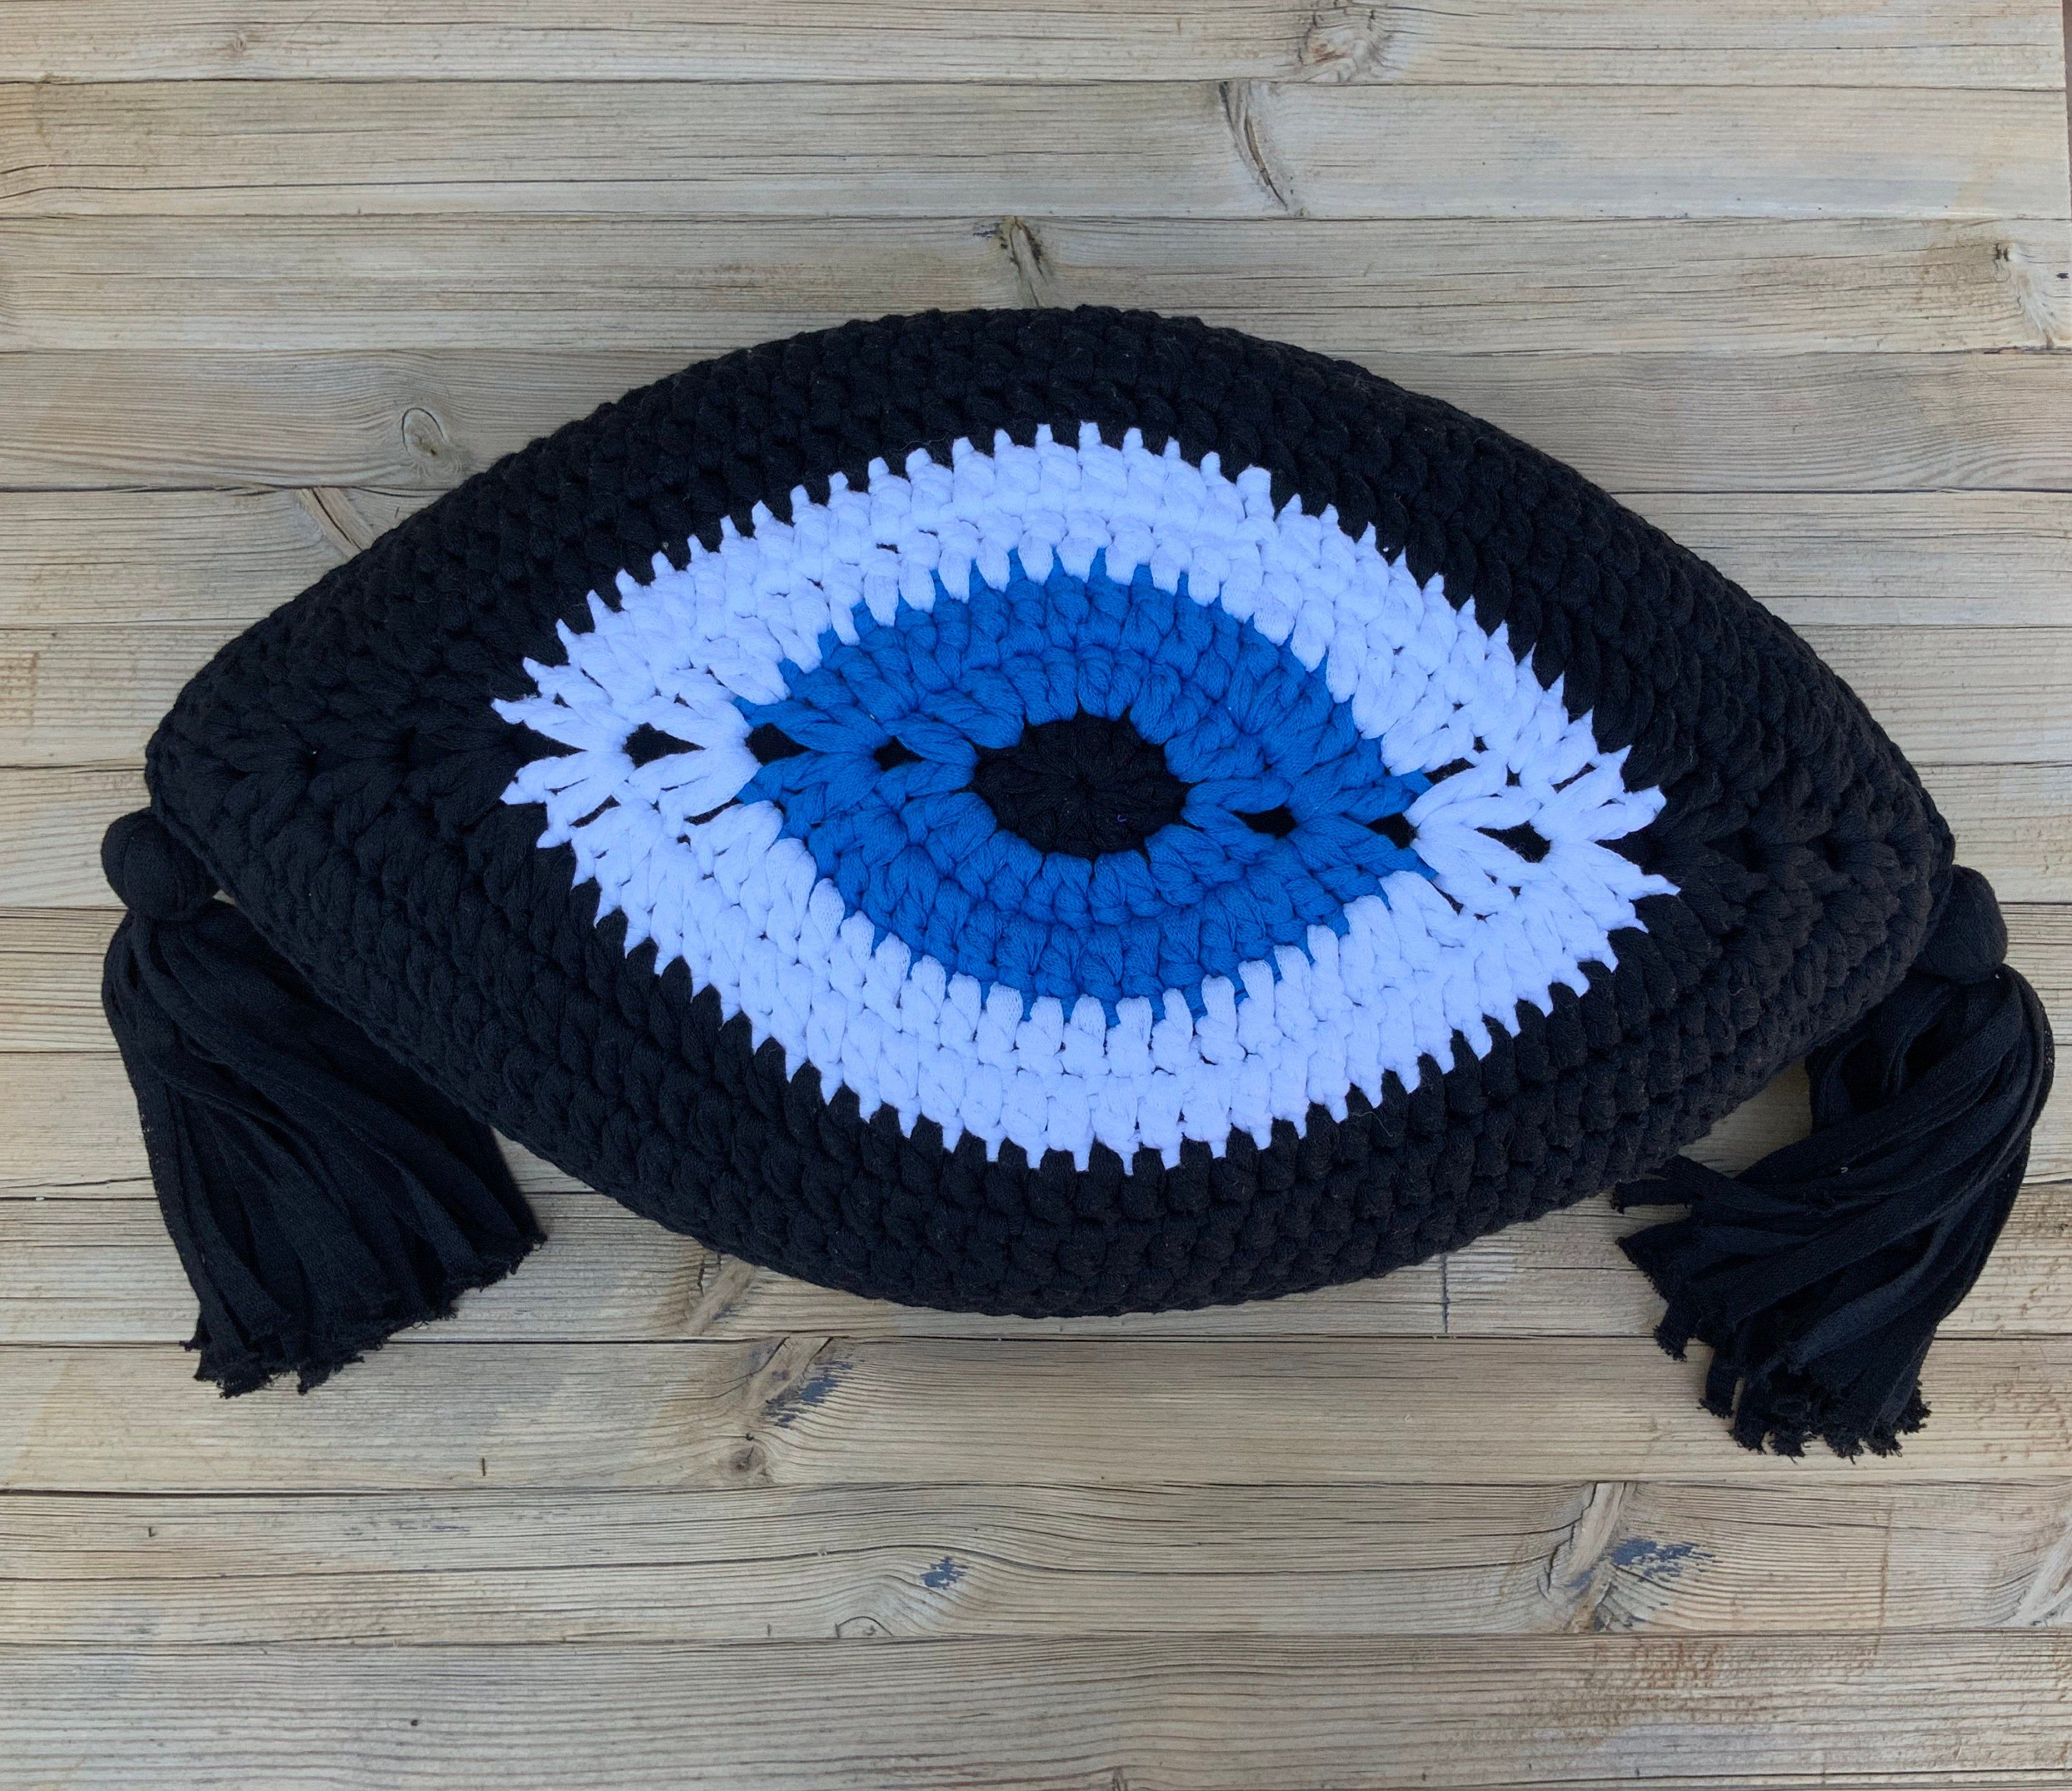 Crochet evil eye cushion, evil eye shaped cushion, Mati